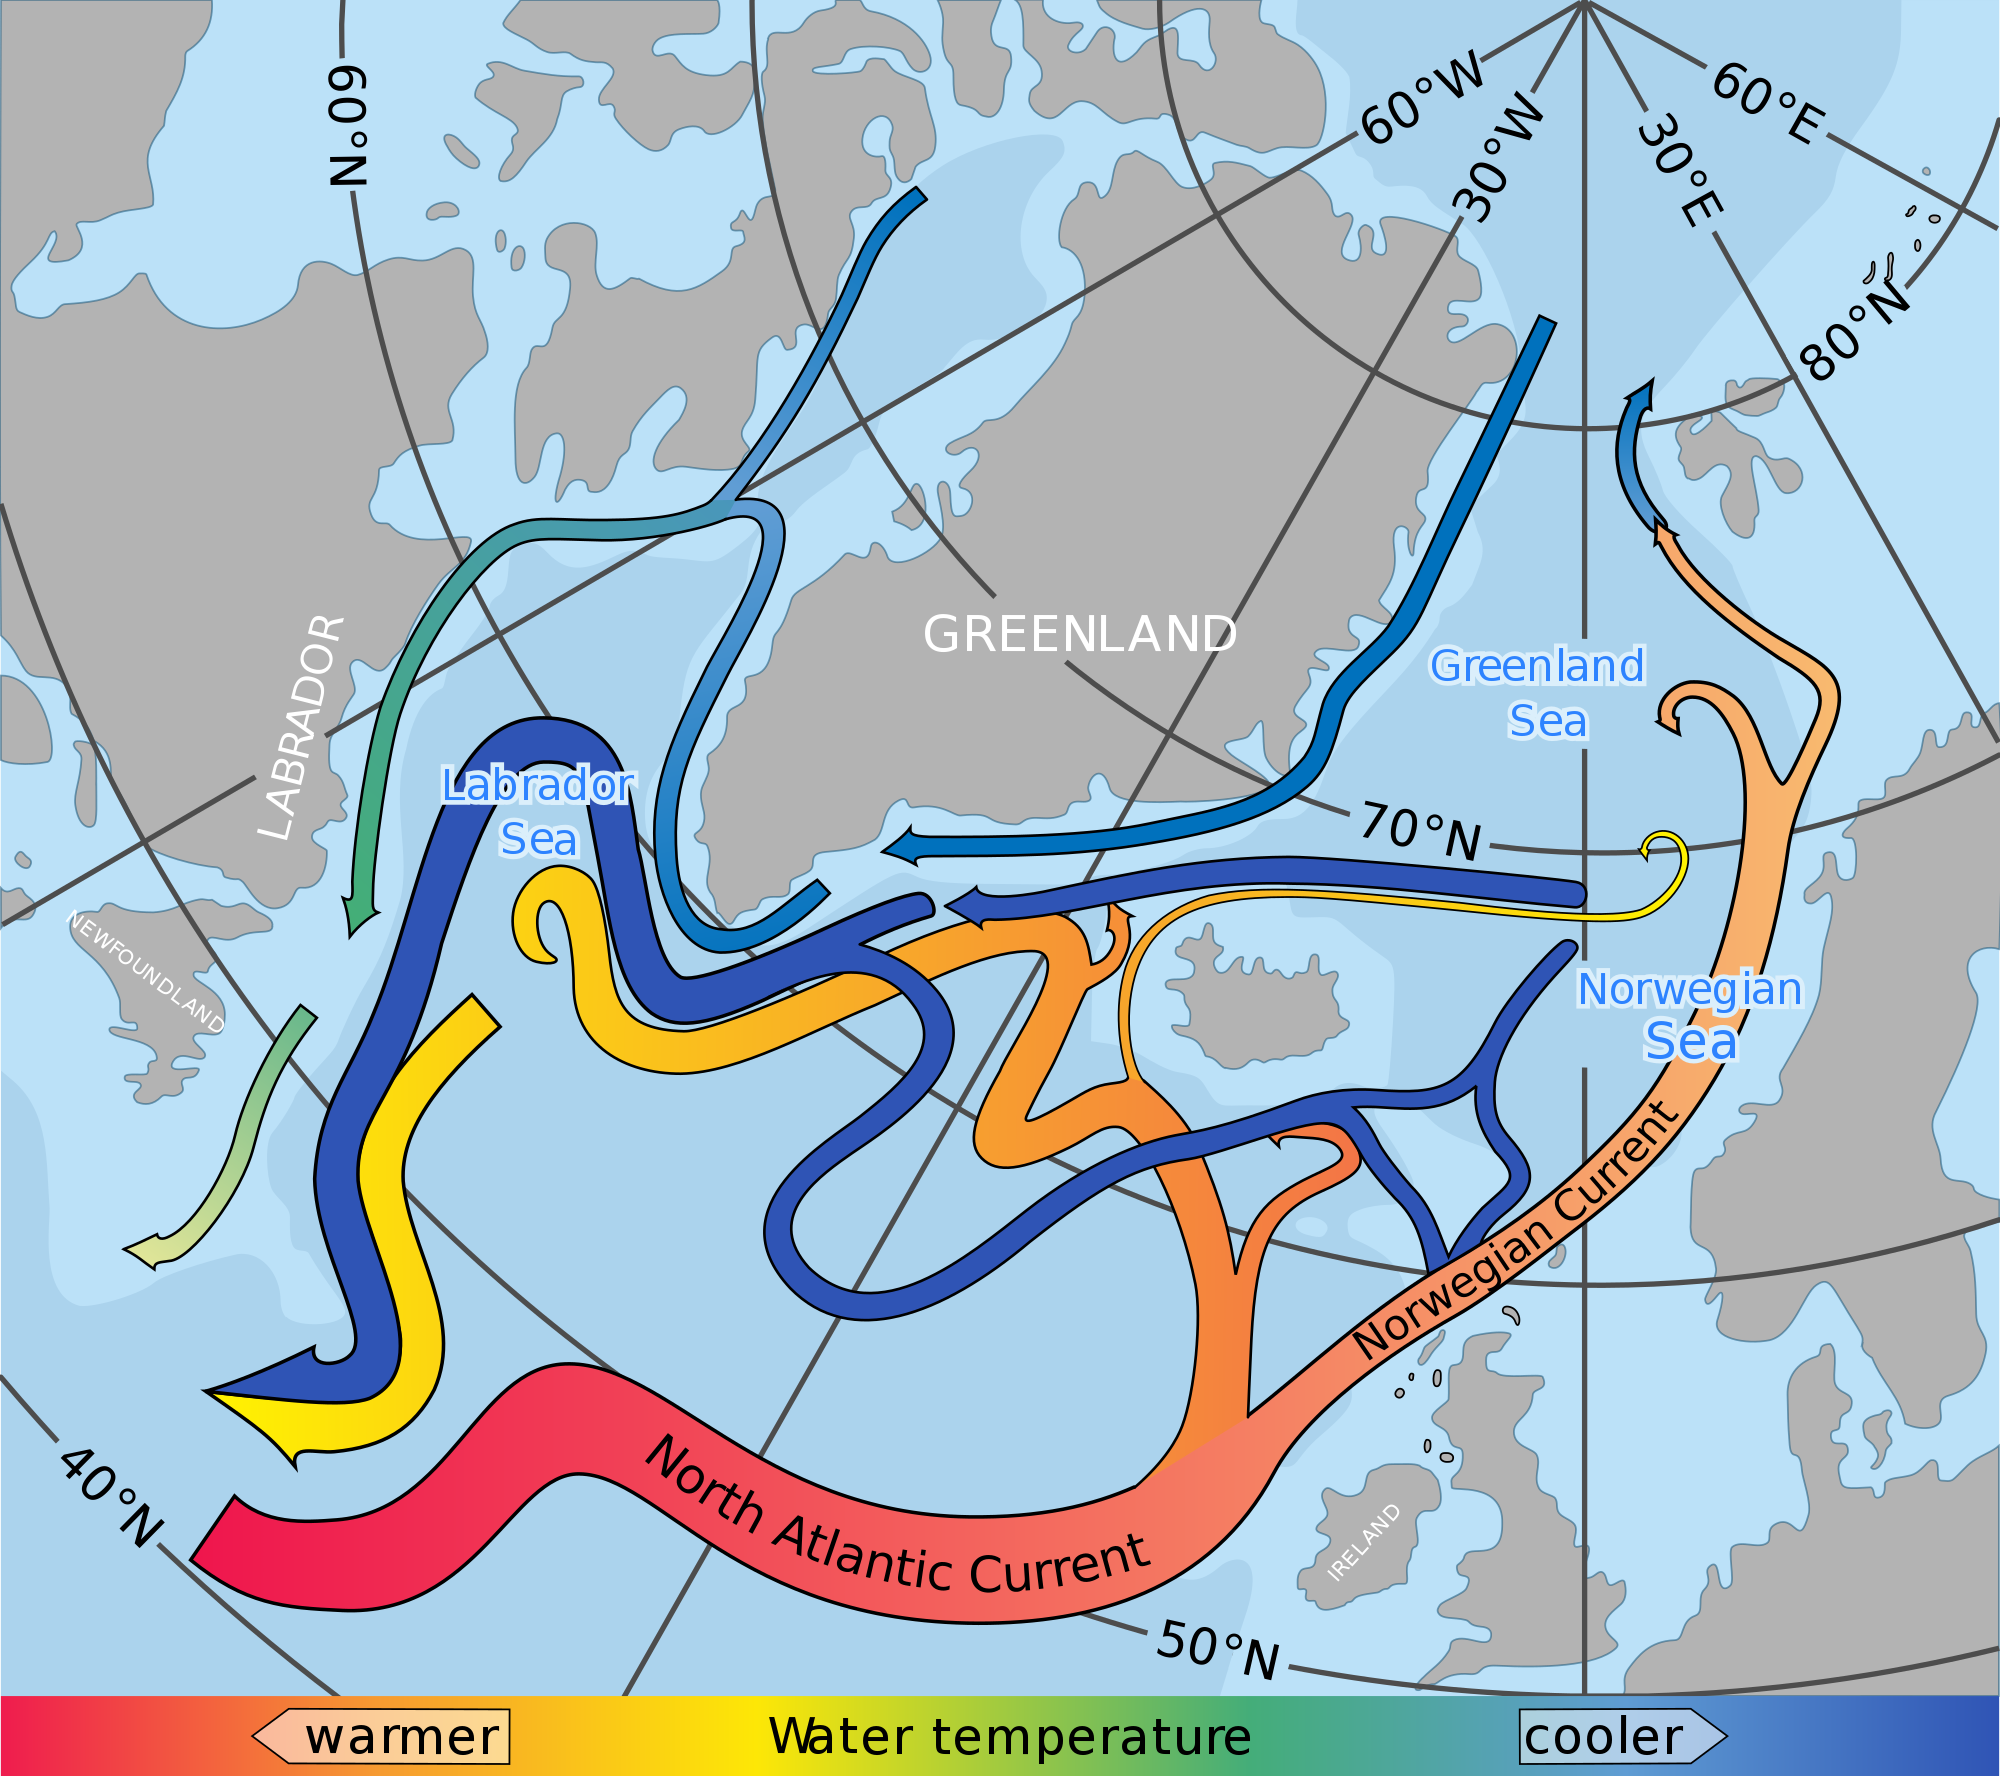 North Atlantic Current - Wikipedia